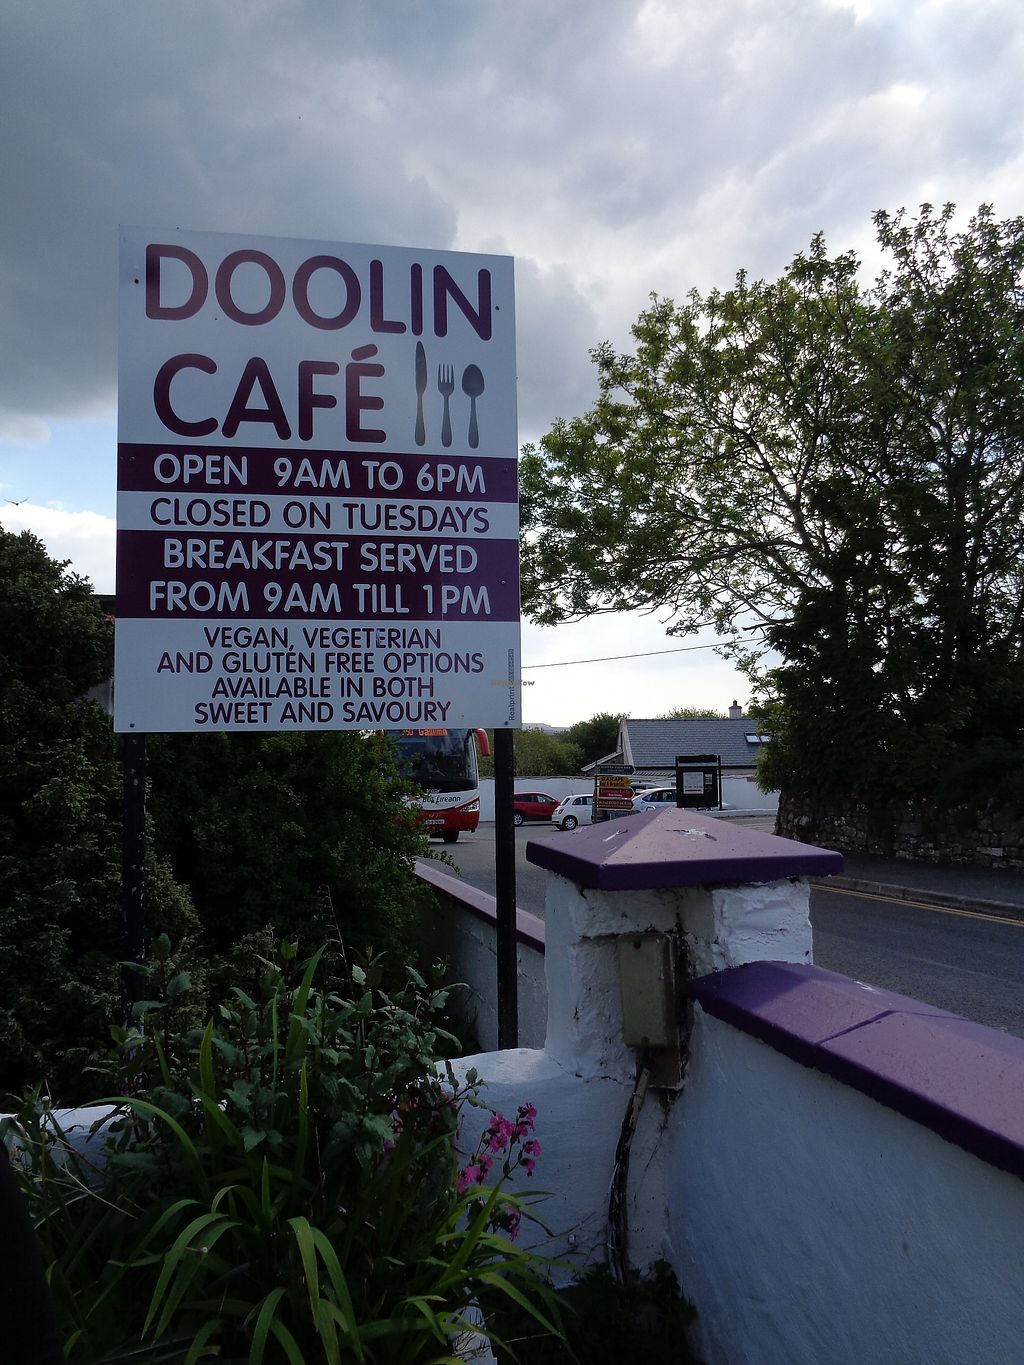 """Photo of Doolin Cafe  by <a href=""""/members/profile/FlorMayana"""">FlorMayana</a> <br/>Doolin Cafe <br/> March 30, 2018  - <a href='/contact/abuse/image/71584/378416'>Report</a>"""